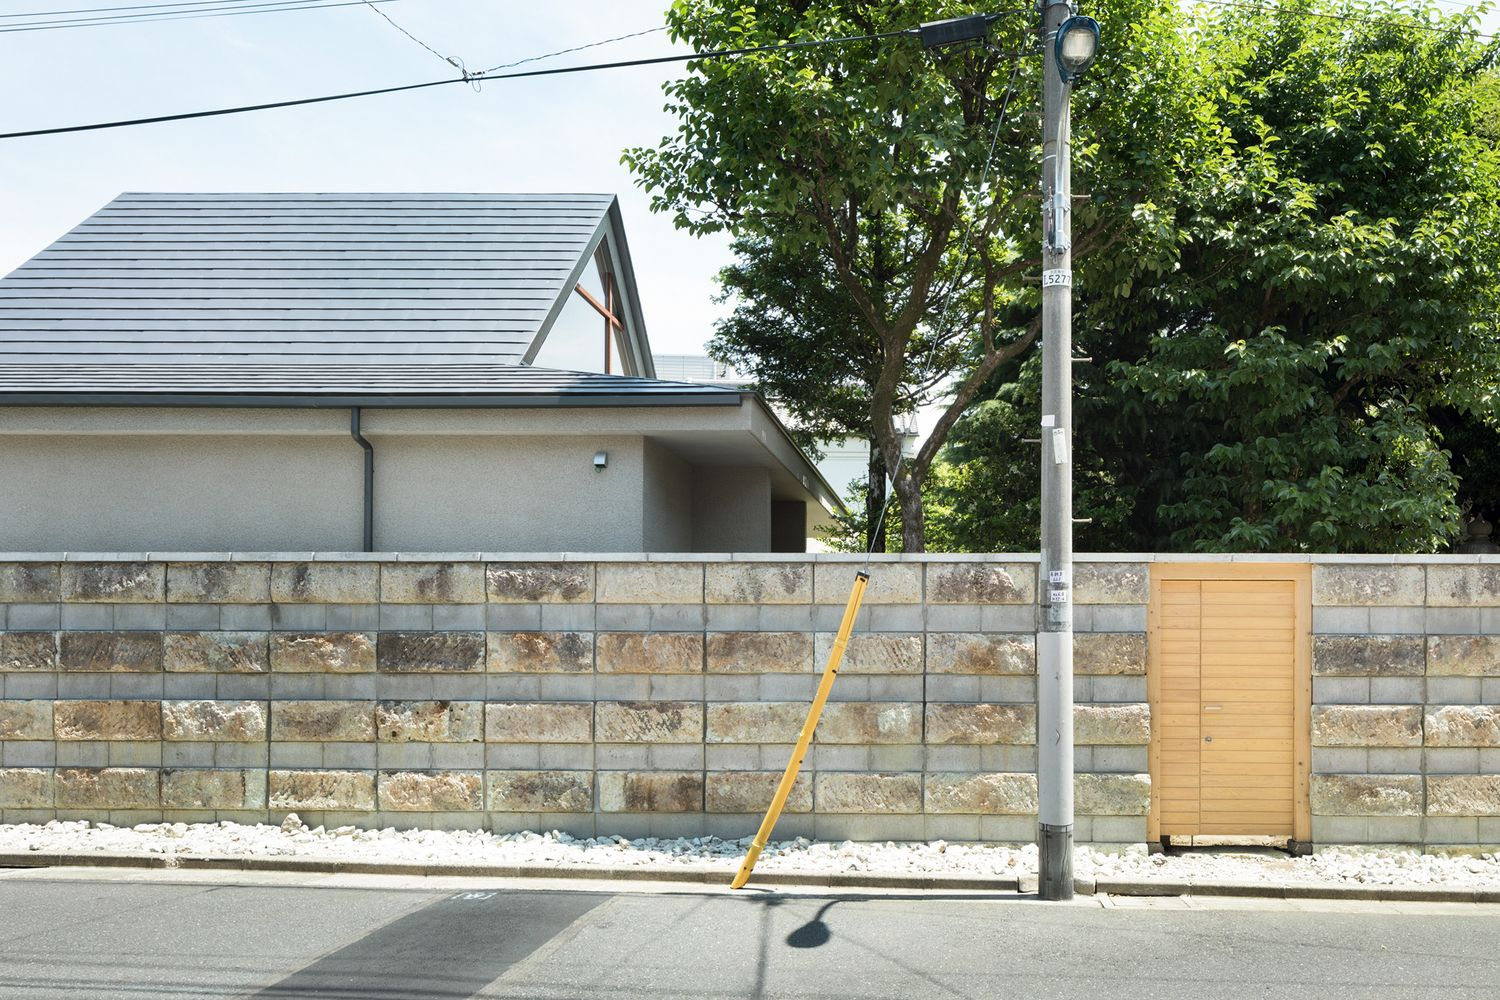 Gallery Of Dutch Gable Roof House Hiroki Tominaga Atelier 10 Gable Roof House Dutch Gable Roof House Roof